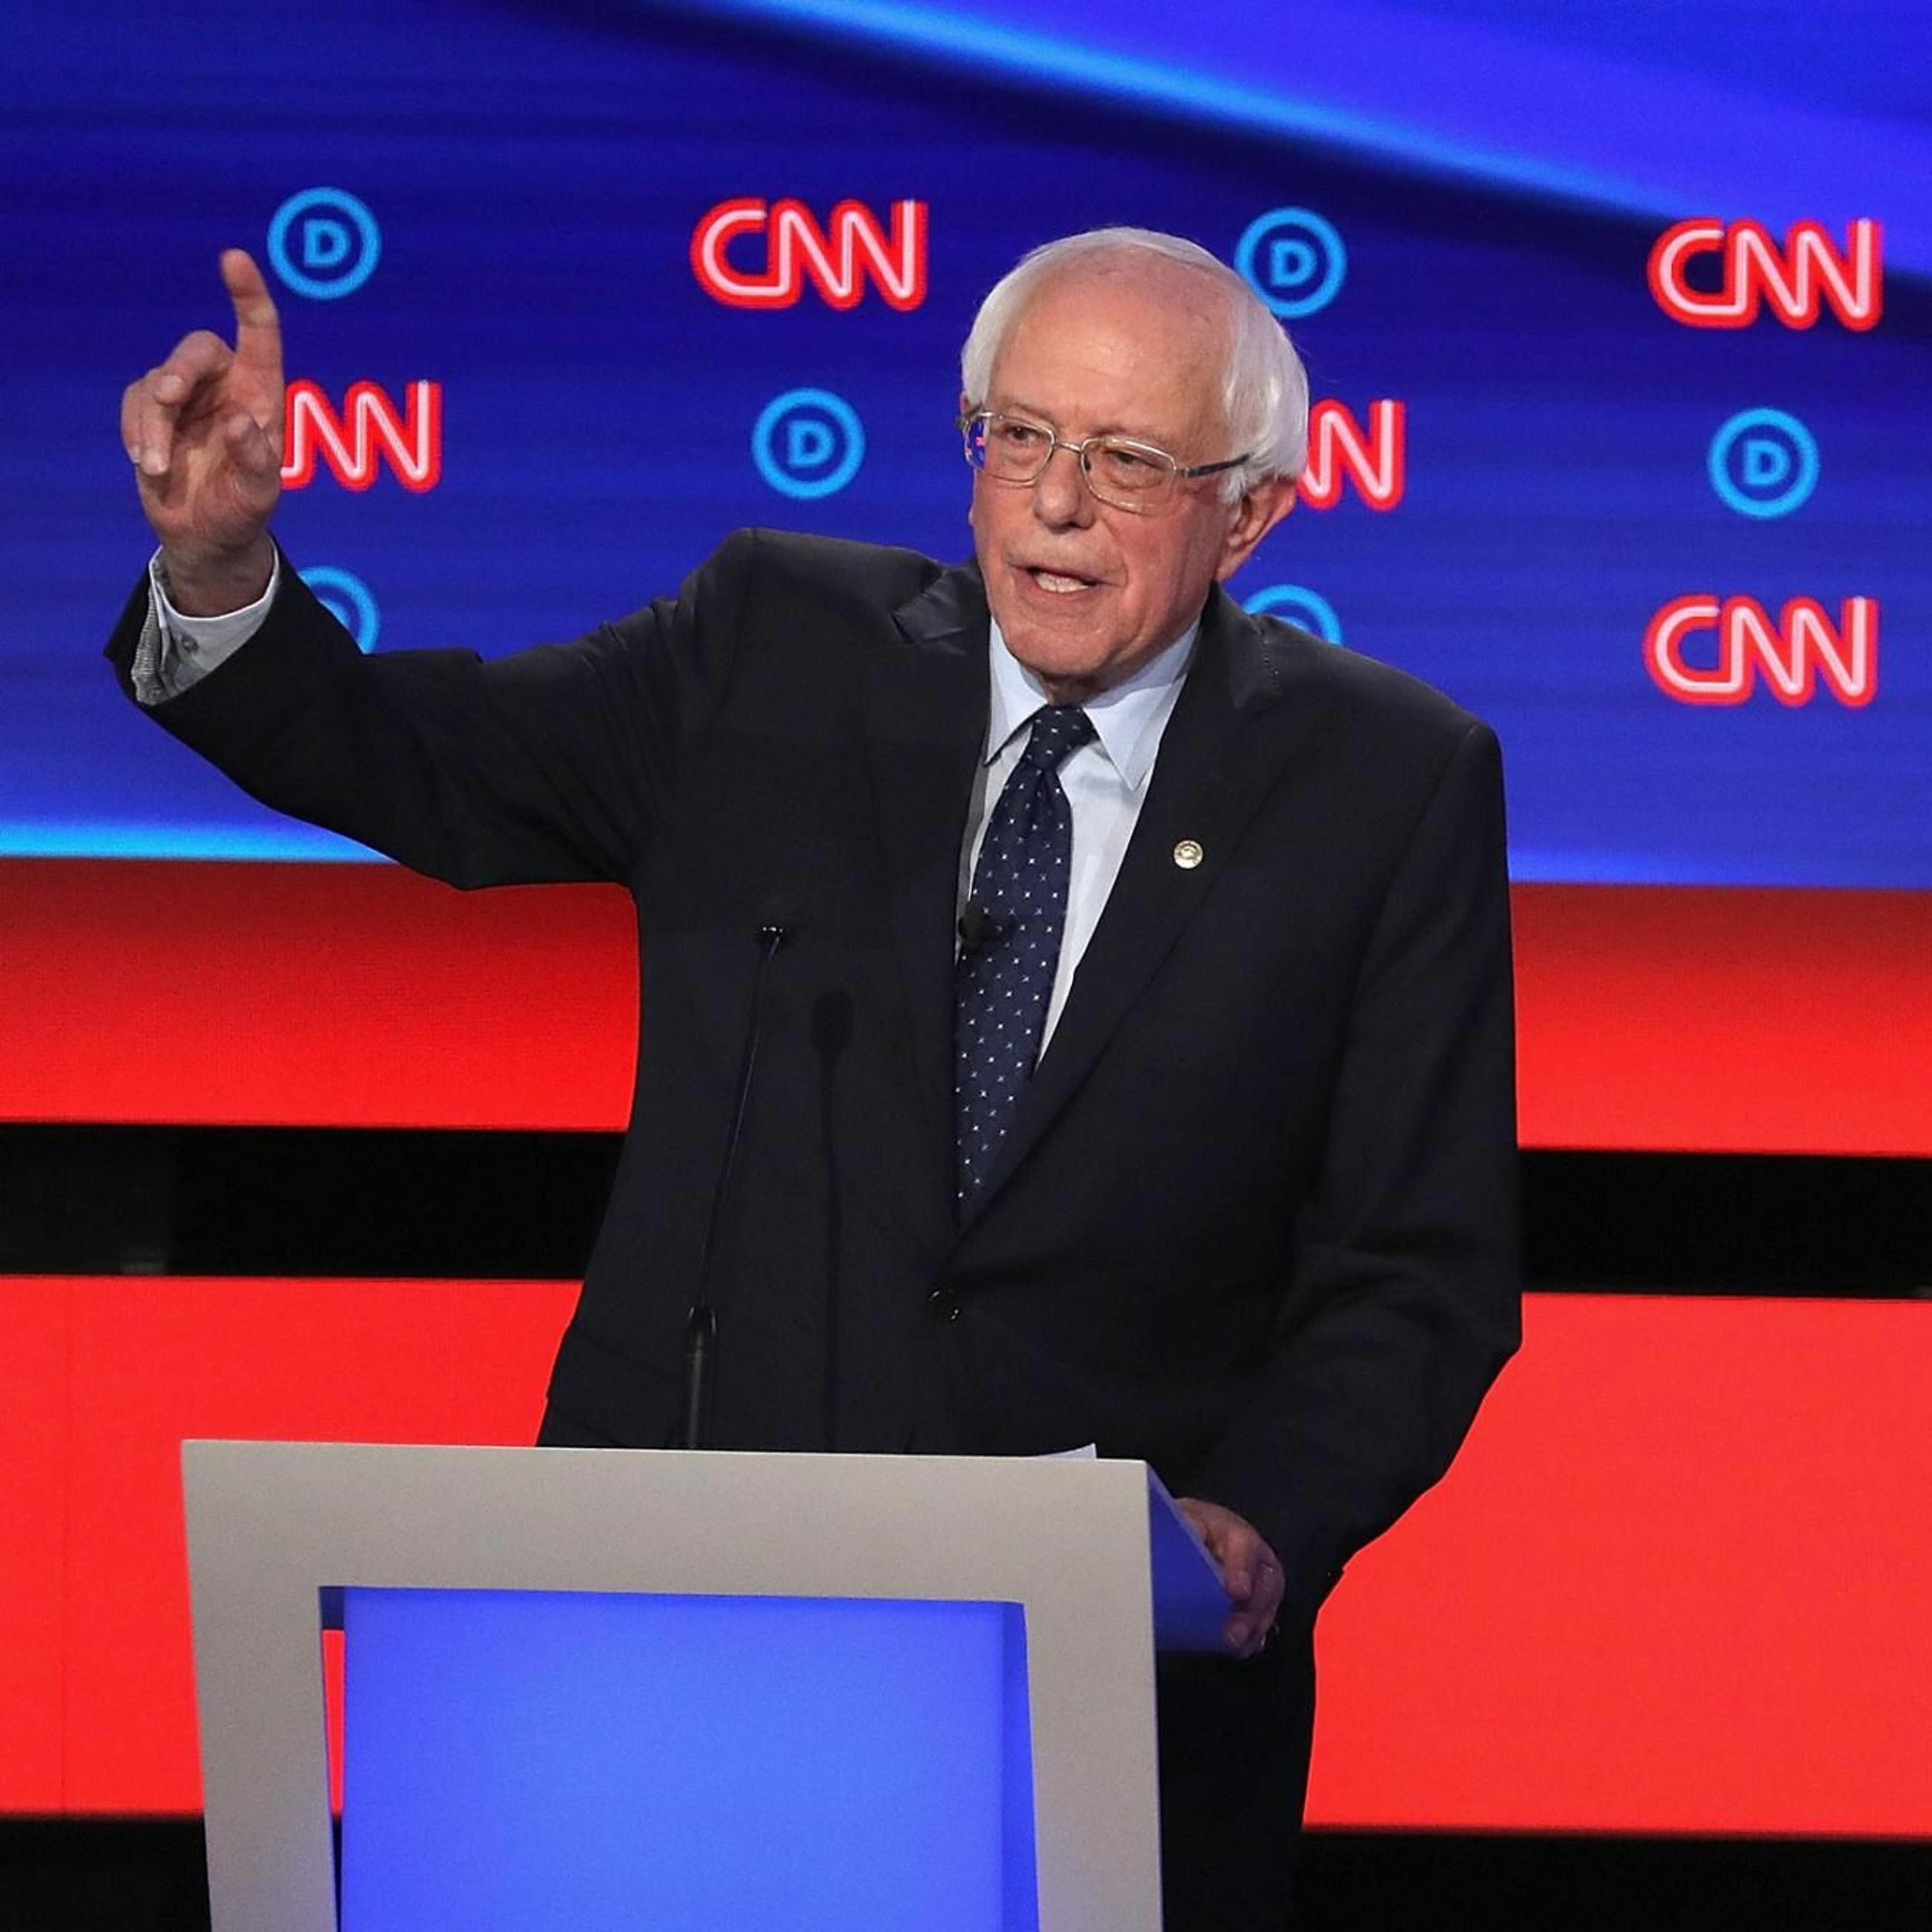 Theory of Change #3: Sanders vs Warren and the battle over how to make change, feat. Carl Beijer